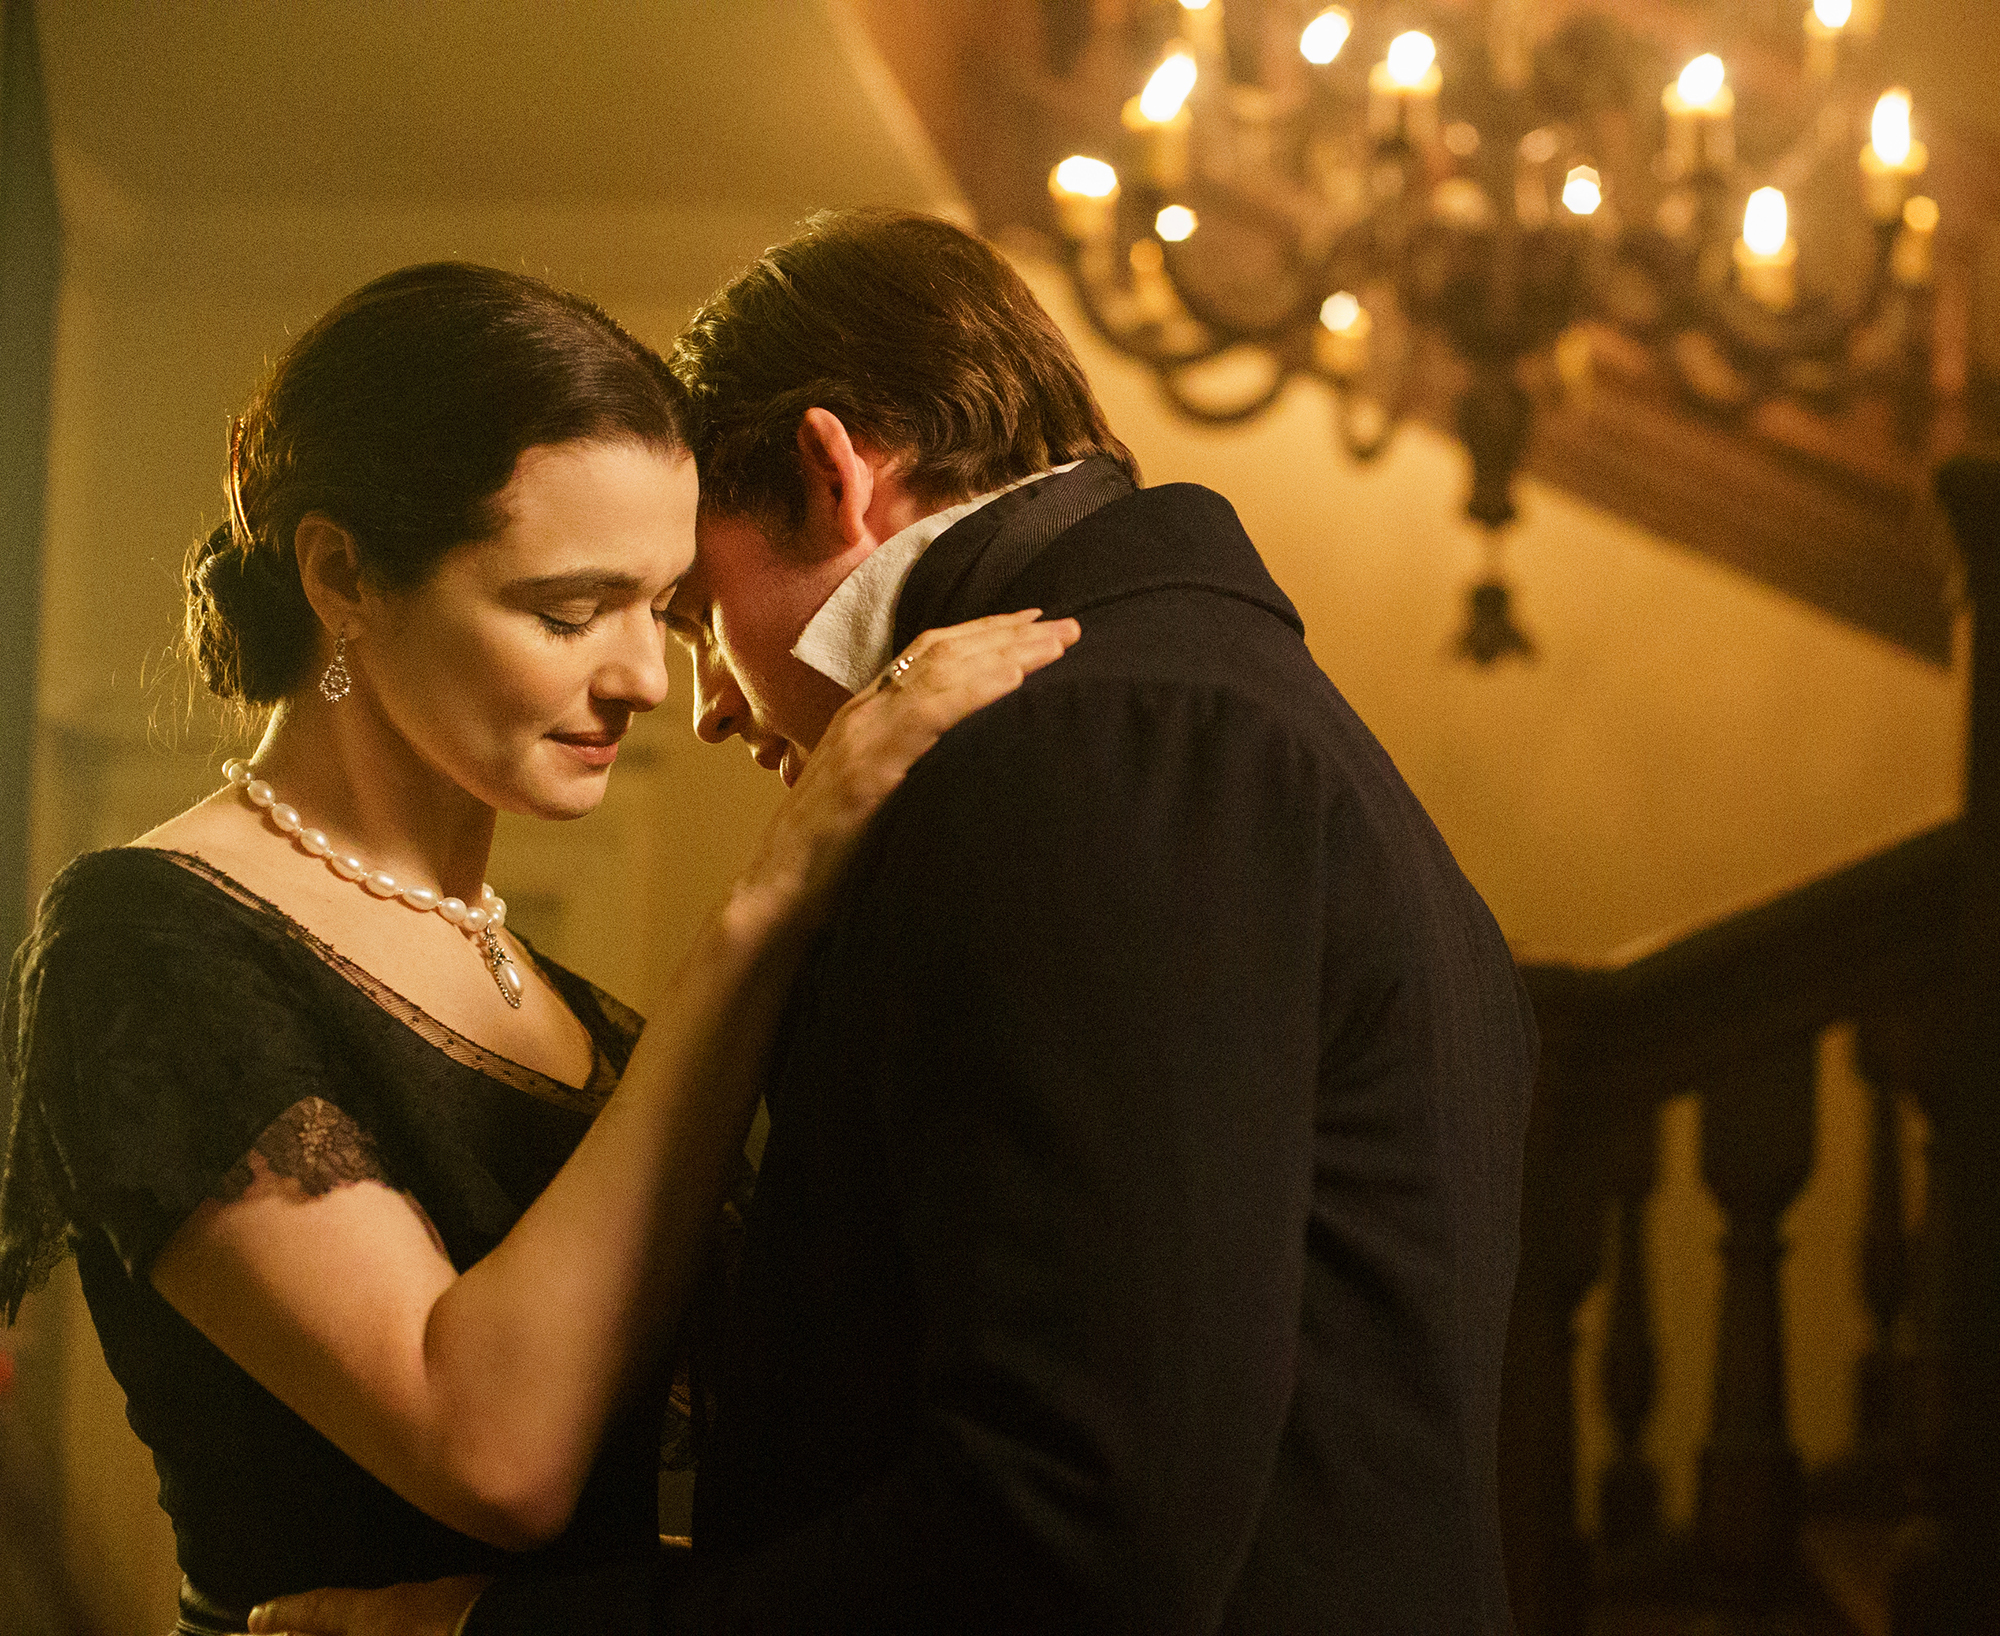 A Dark And Layered Romance My Cousin Rachel Tells The Story Of A Young Englishman Who Plots Revenge Against His Mysterious And Beautiful Cousin